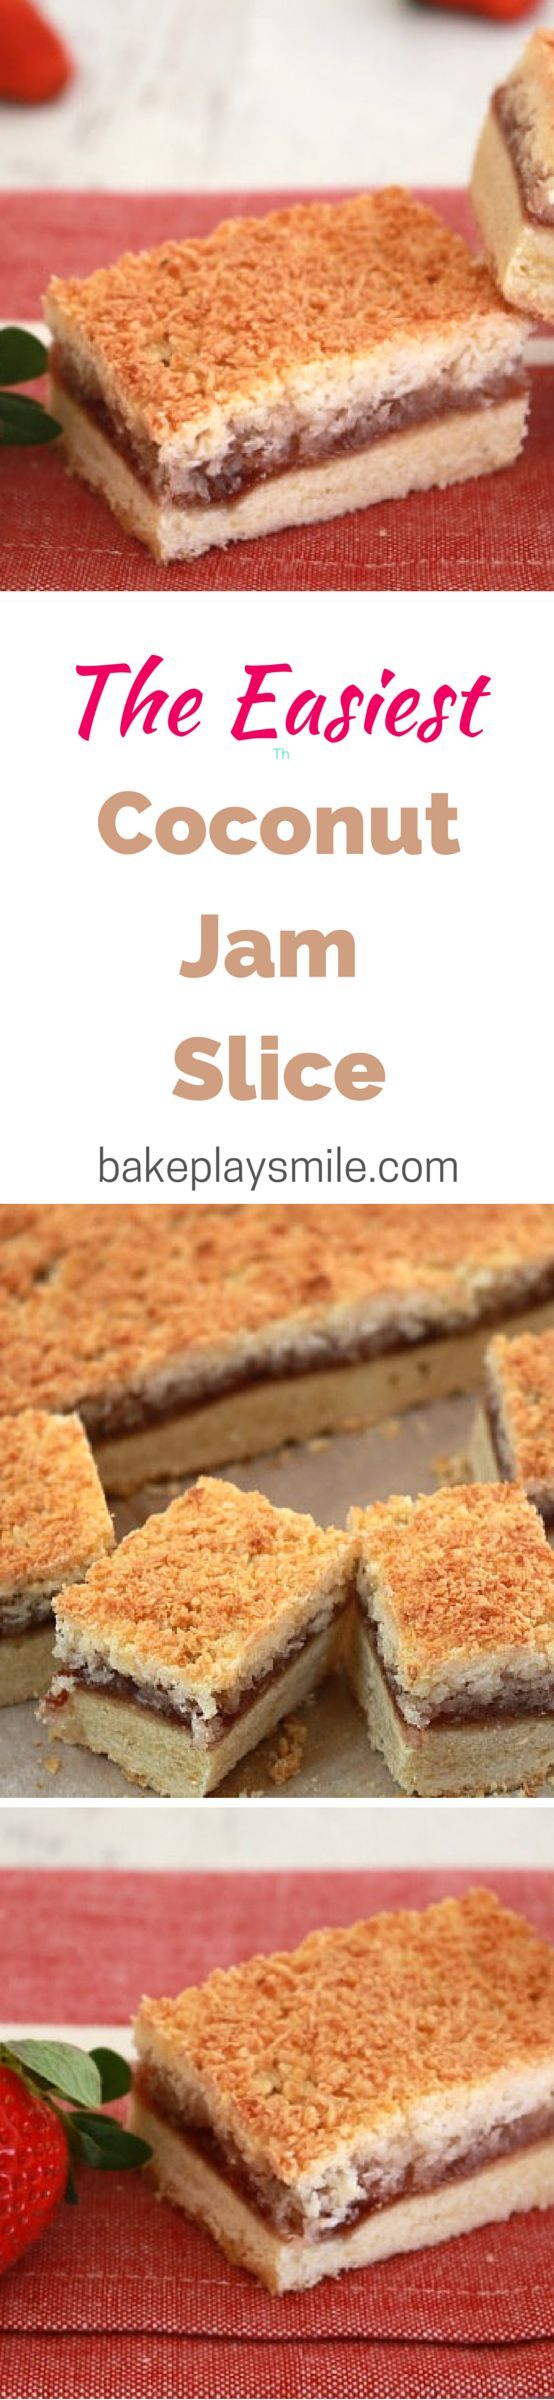 This was always one of my favourite slices growing up - it's such a classic recipe!